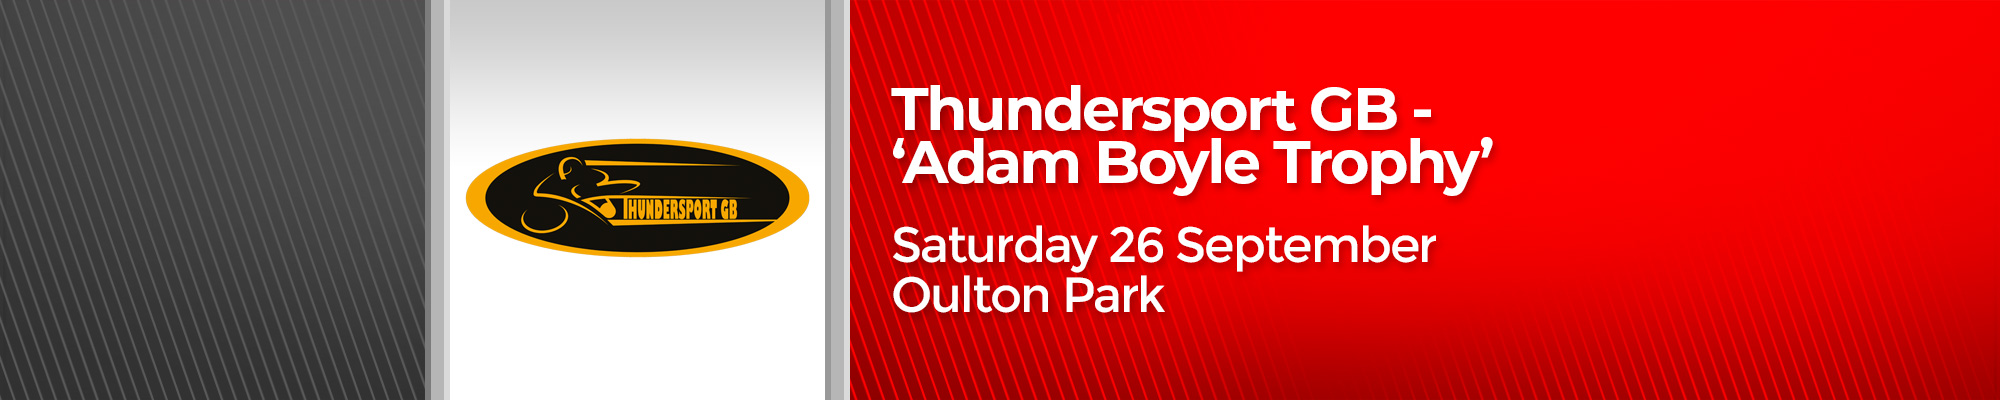 Thundersport GB - Adam Boyle Trophy